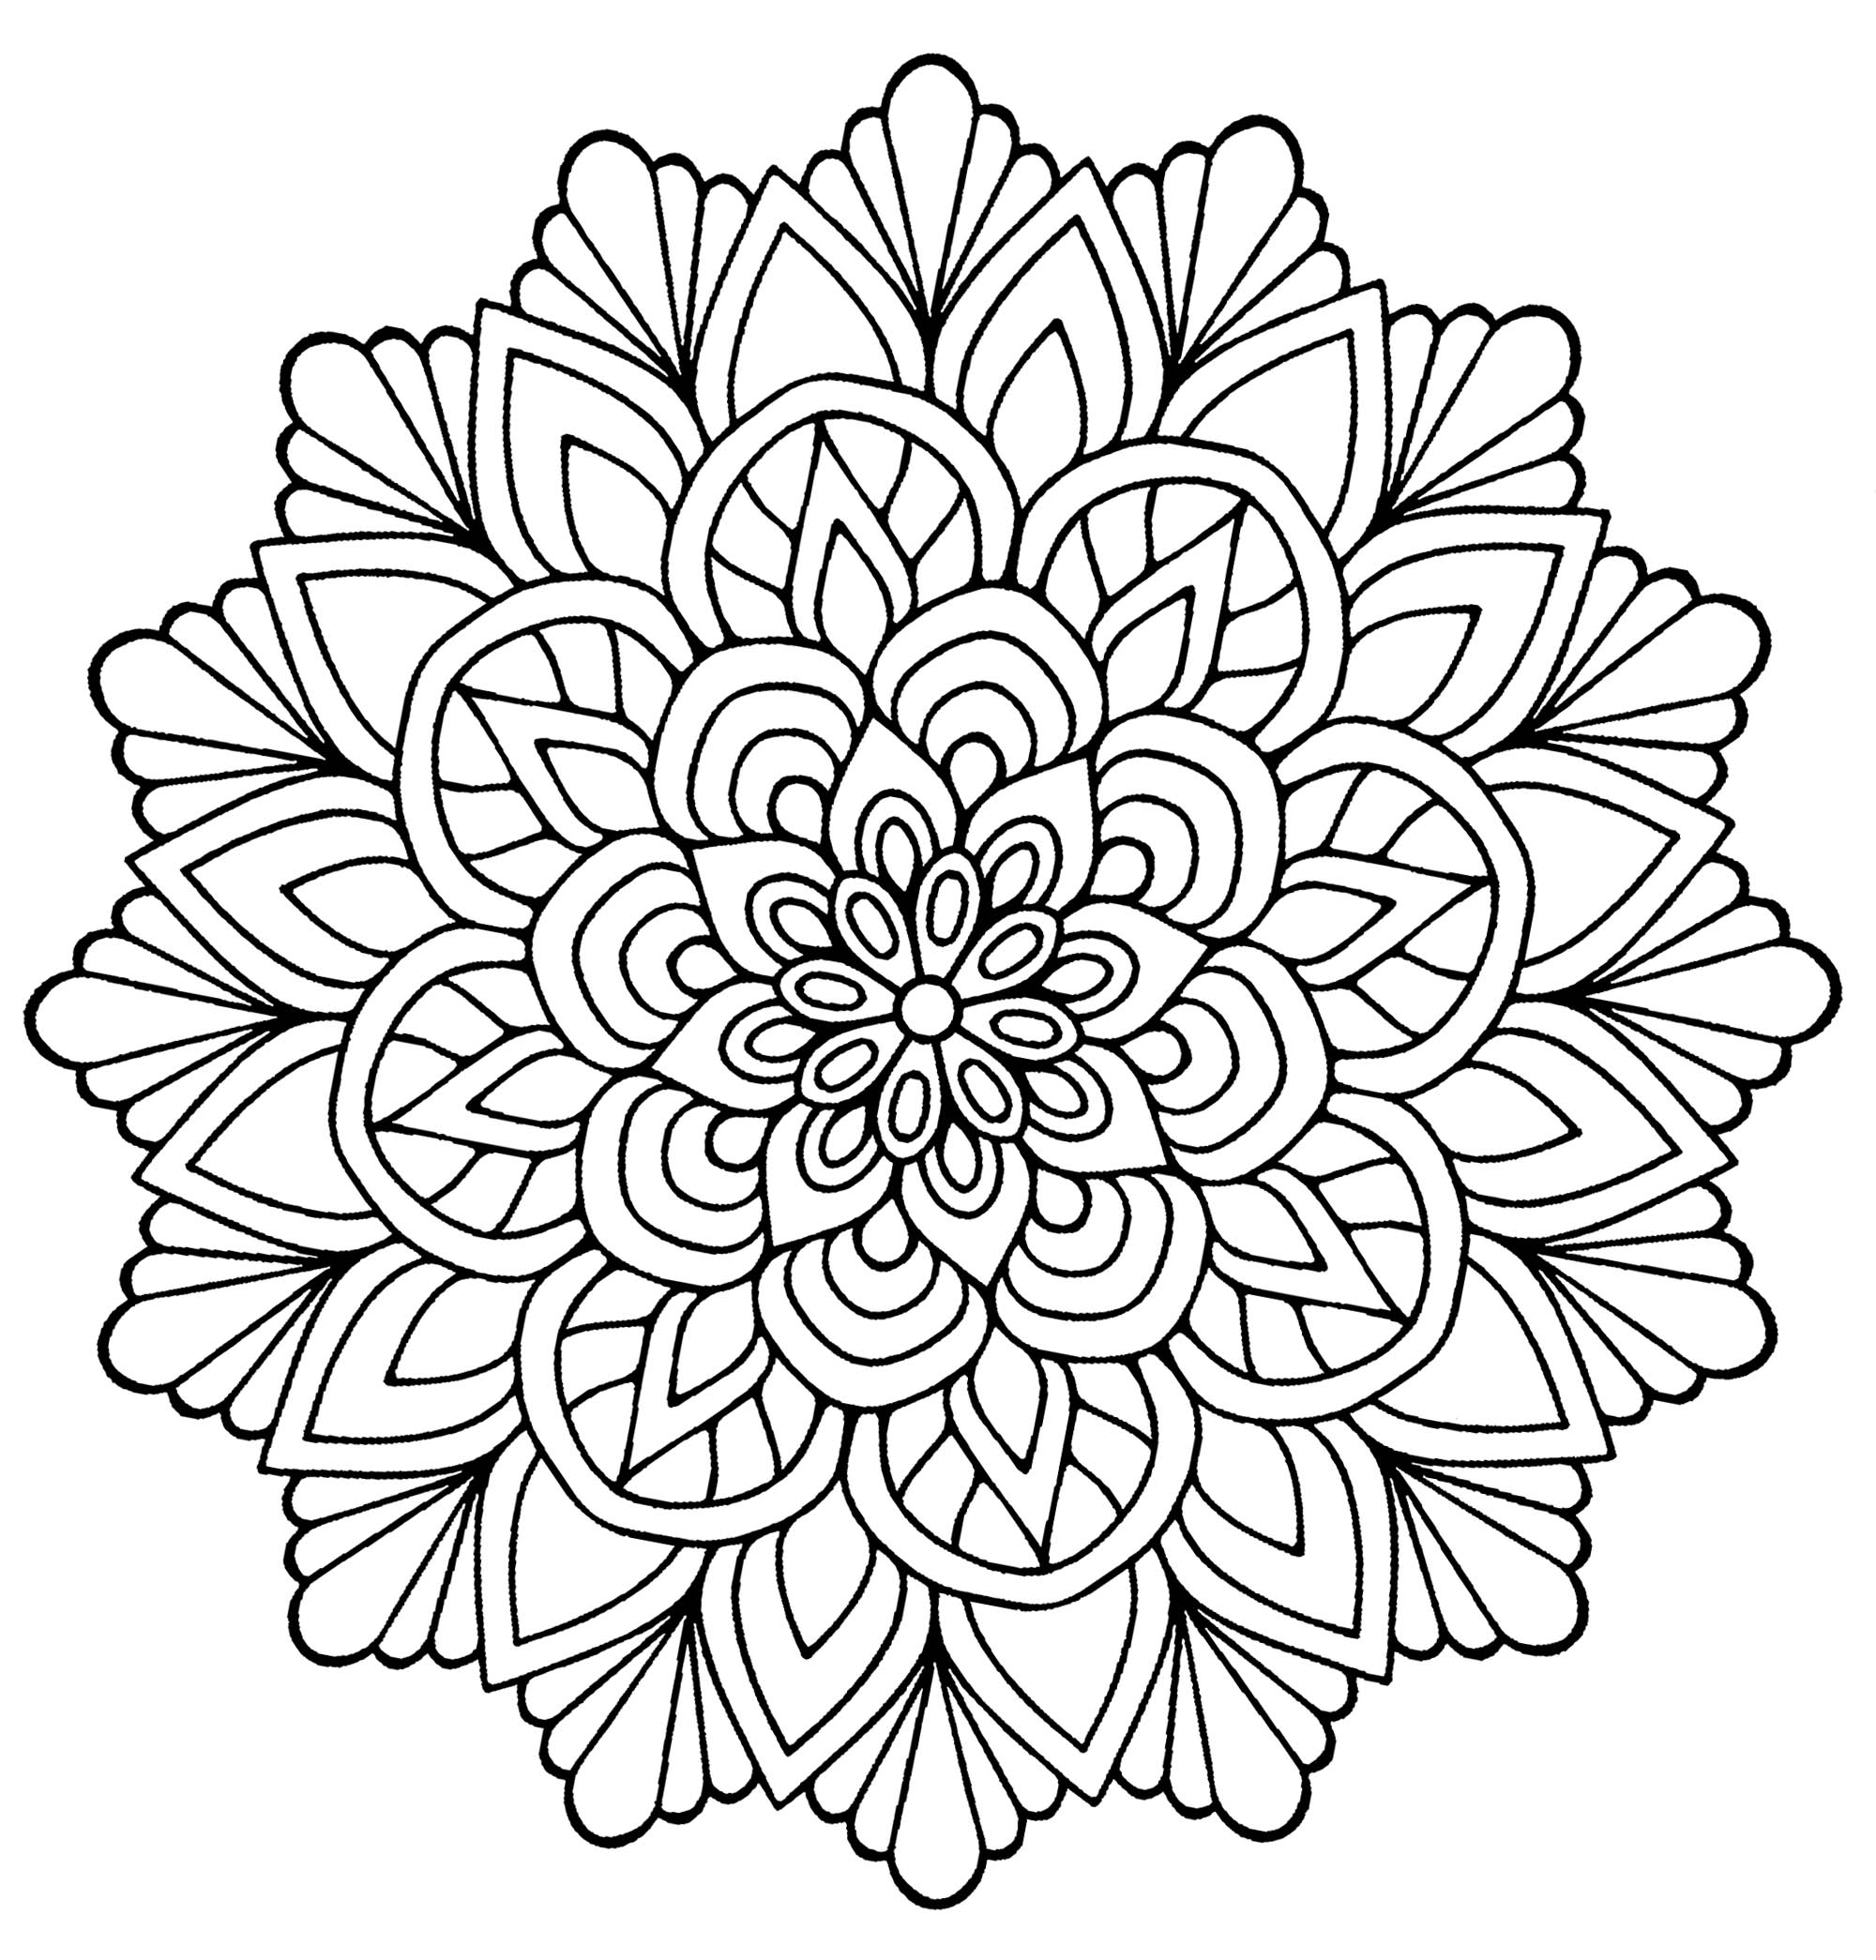 Easy Flower with leaves - Simple Mandalas - 100% Mandalas ...